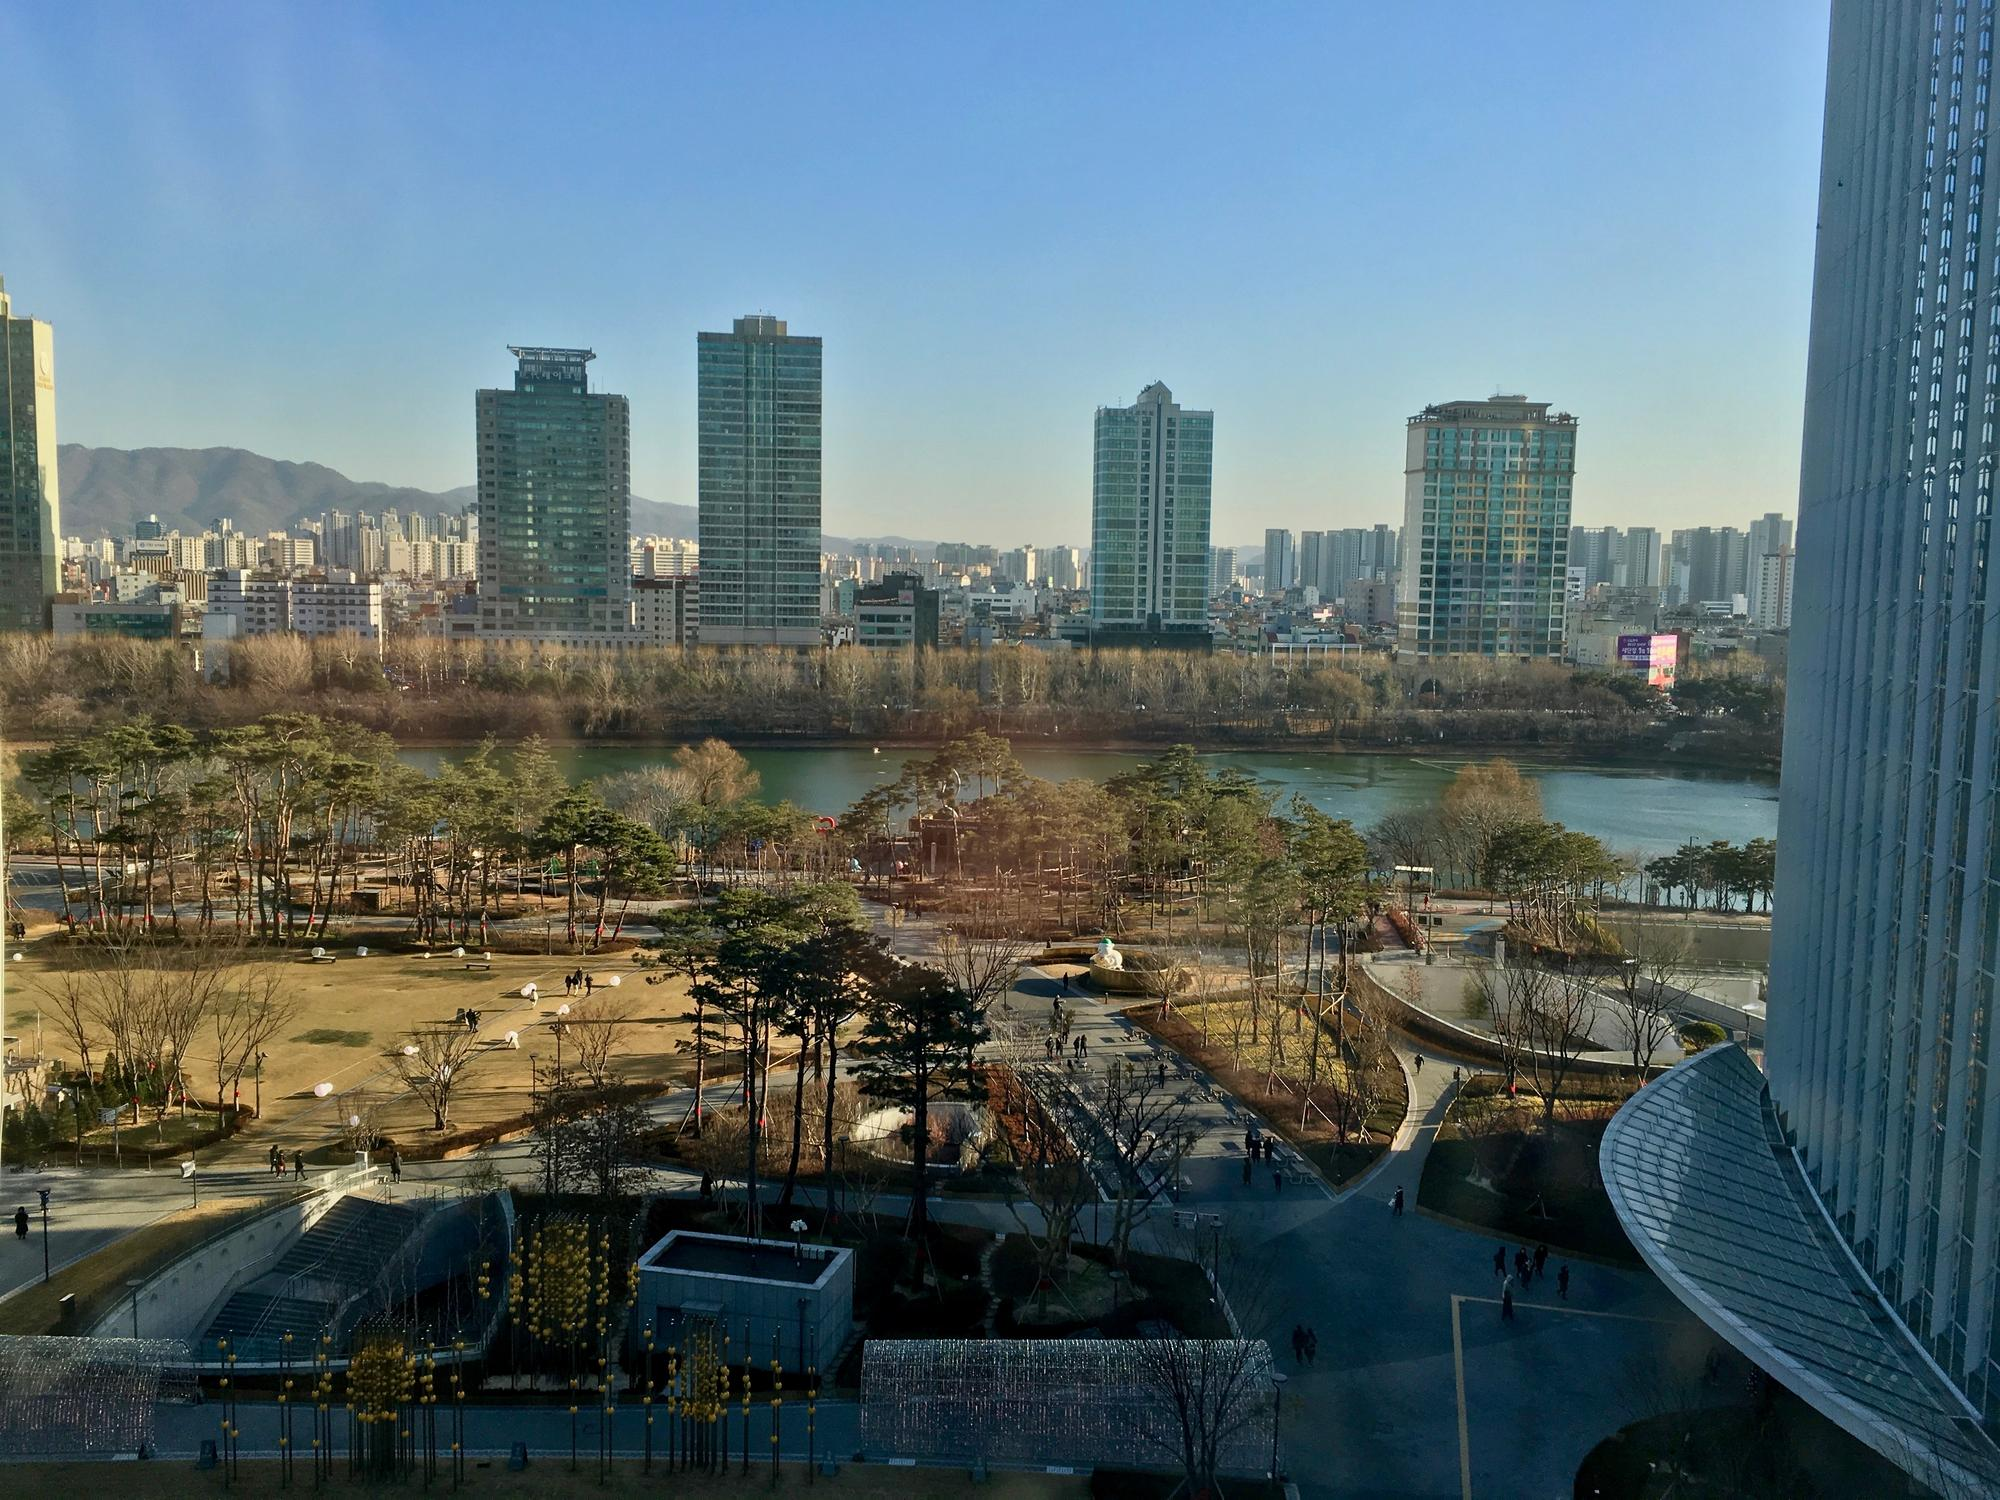 🇰🇷 Seoul, South Korea, december 2018.